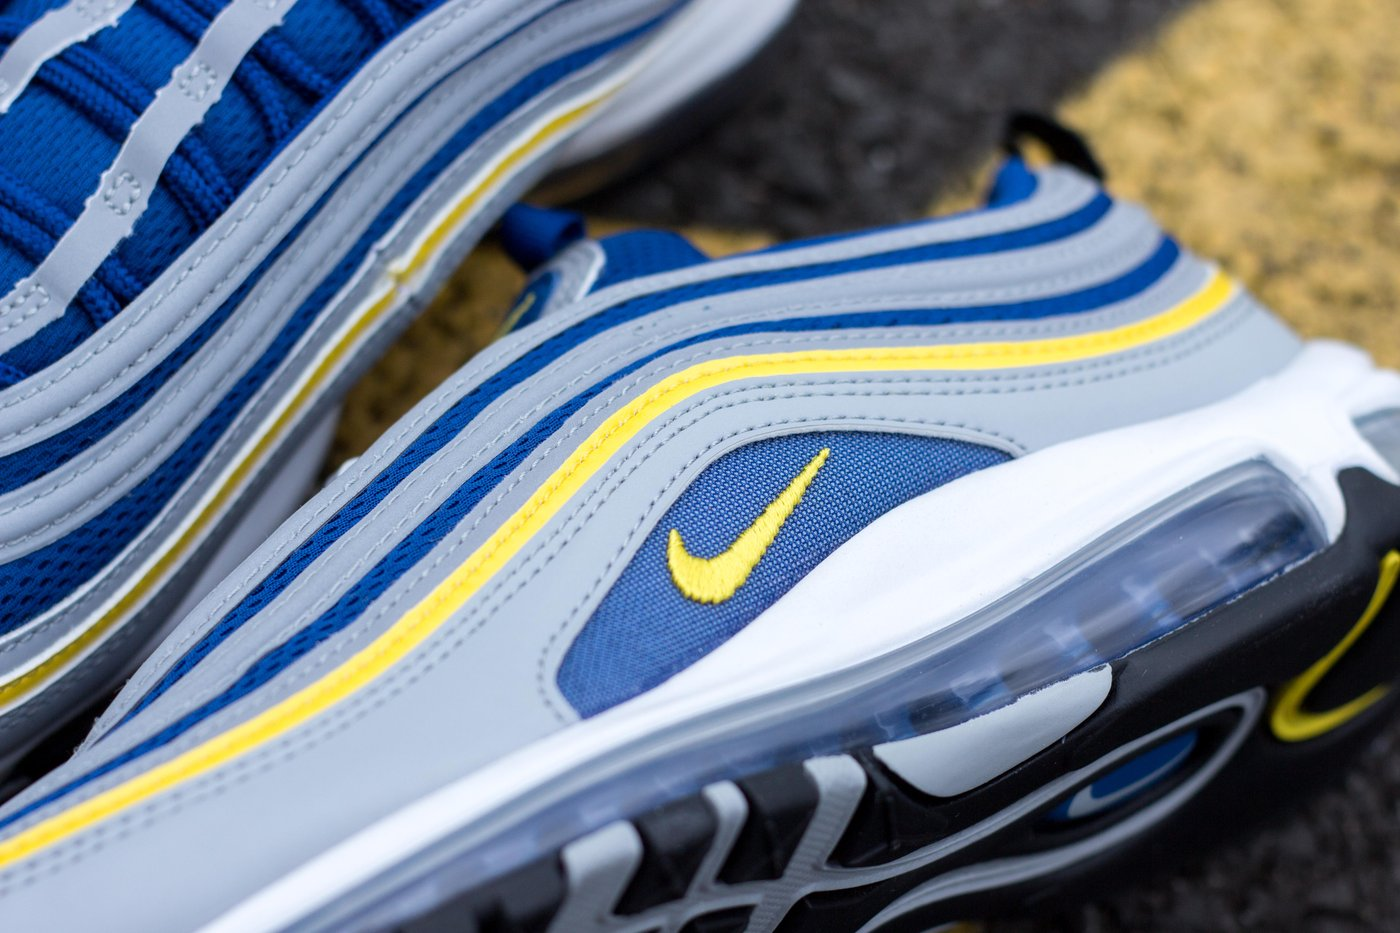 Nike Air Max 97 - Wolf Grey/Tour Yellow/Gym Blue/White #921826-006-Preorder Item-Navy Selected Shop